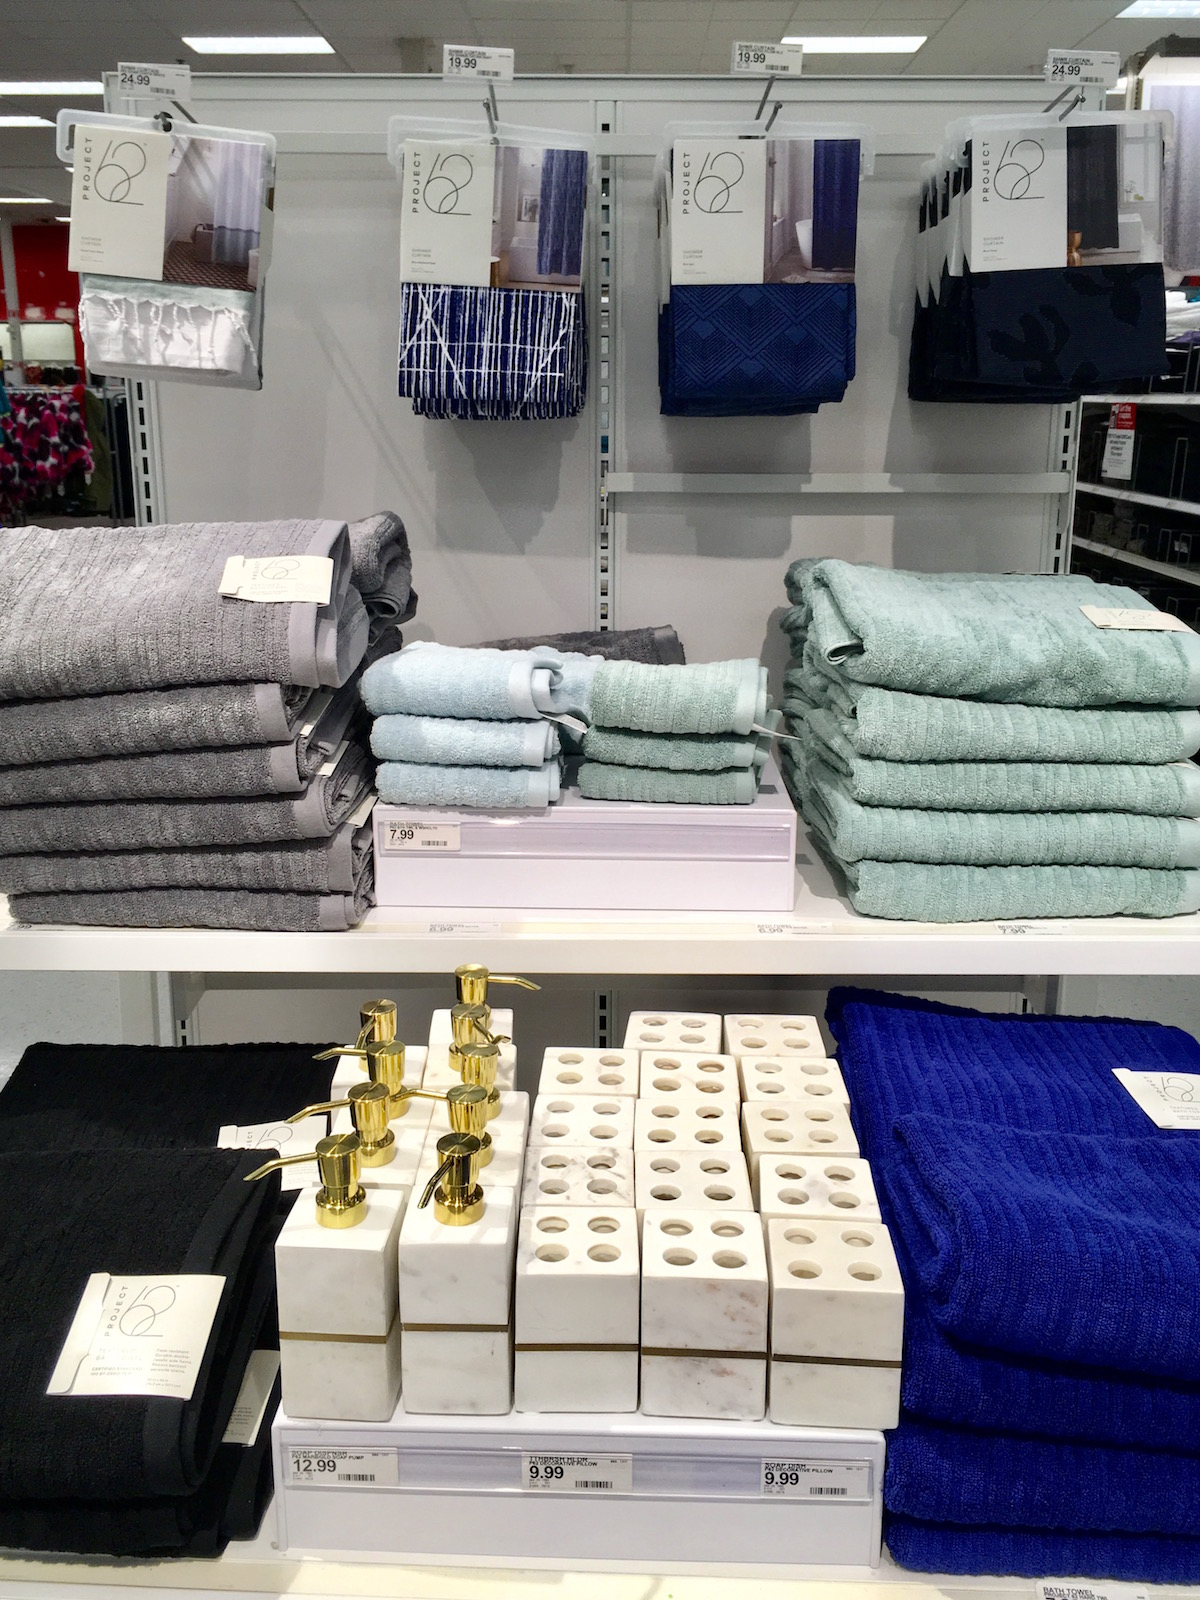 Display Of Project 62 Shower Curtains, Bath Towels, And Toothbrush Holders.